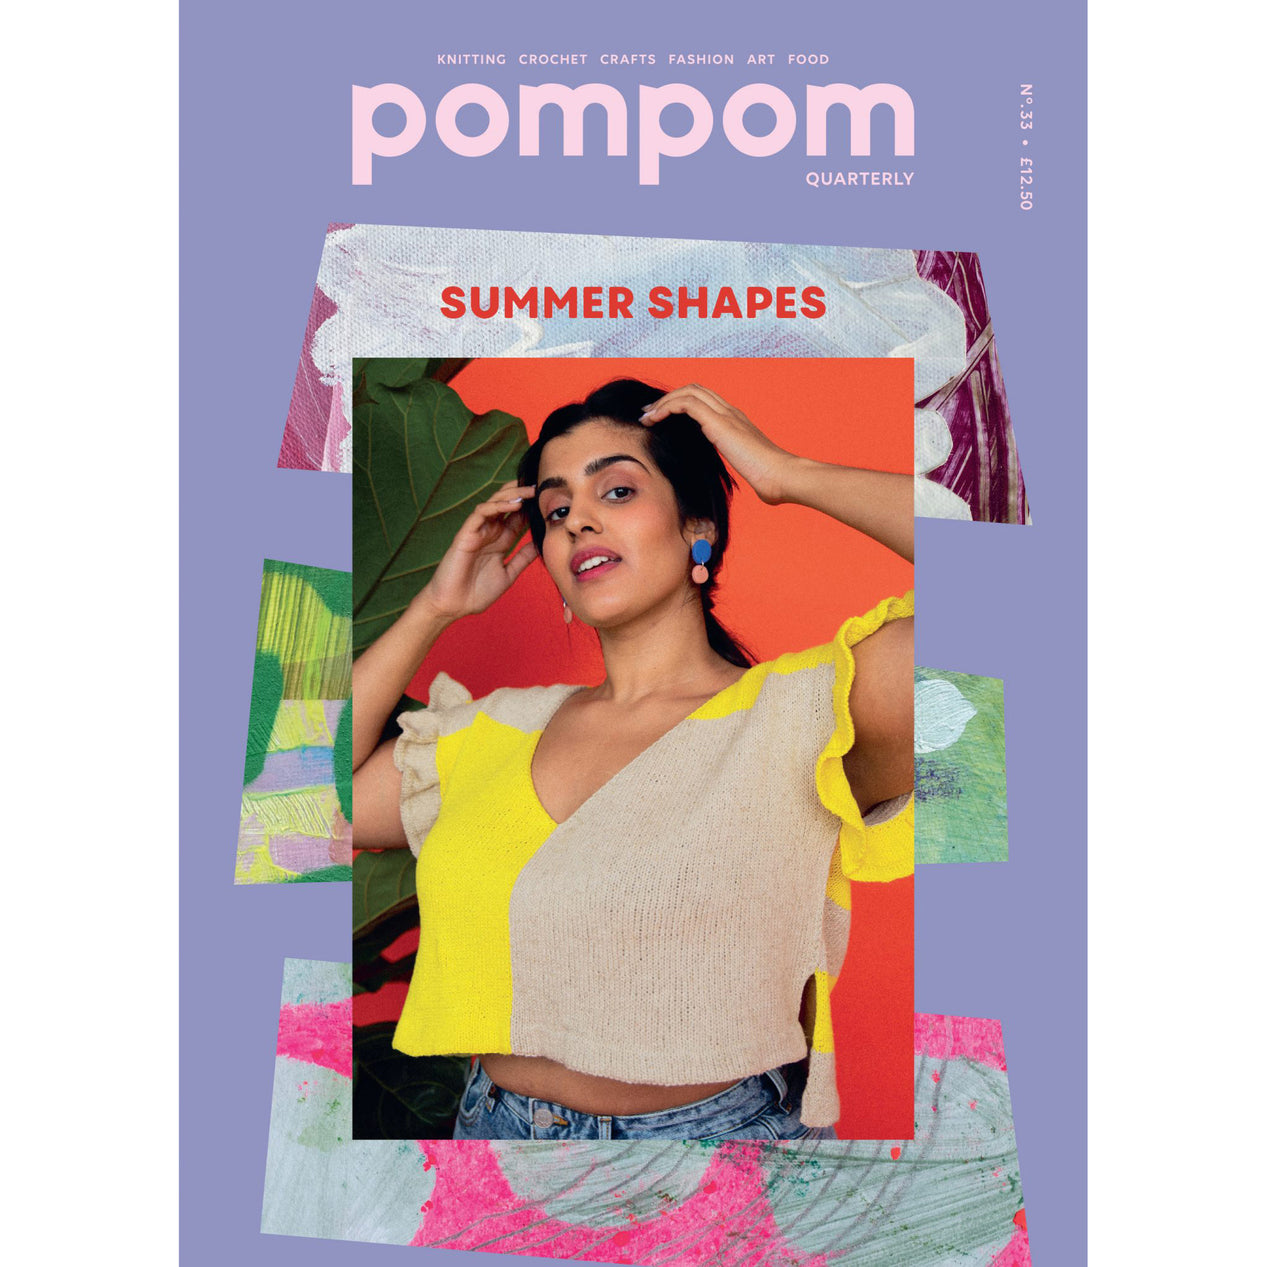 pom pom quarterly - Issue 33 - Summer 2020